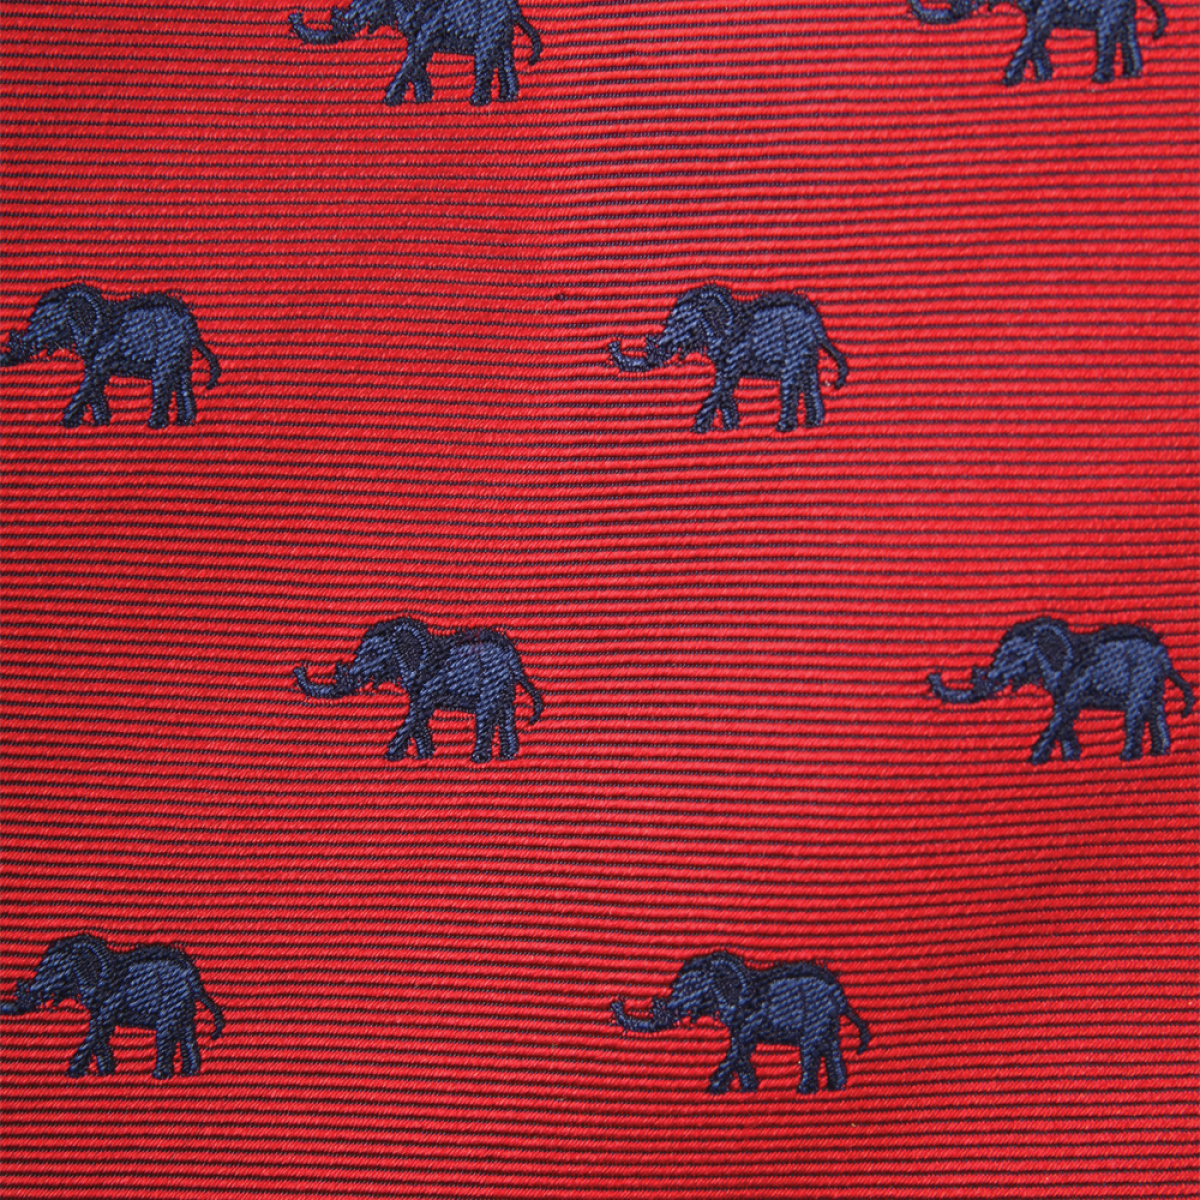 Woven Elephant Bow - Red with Navy